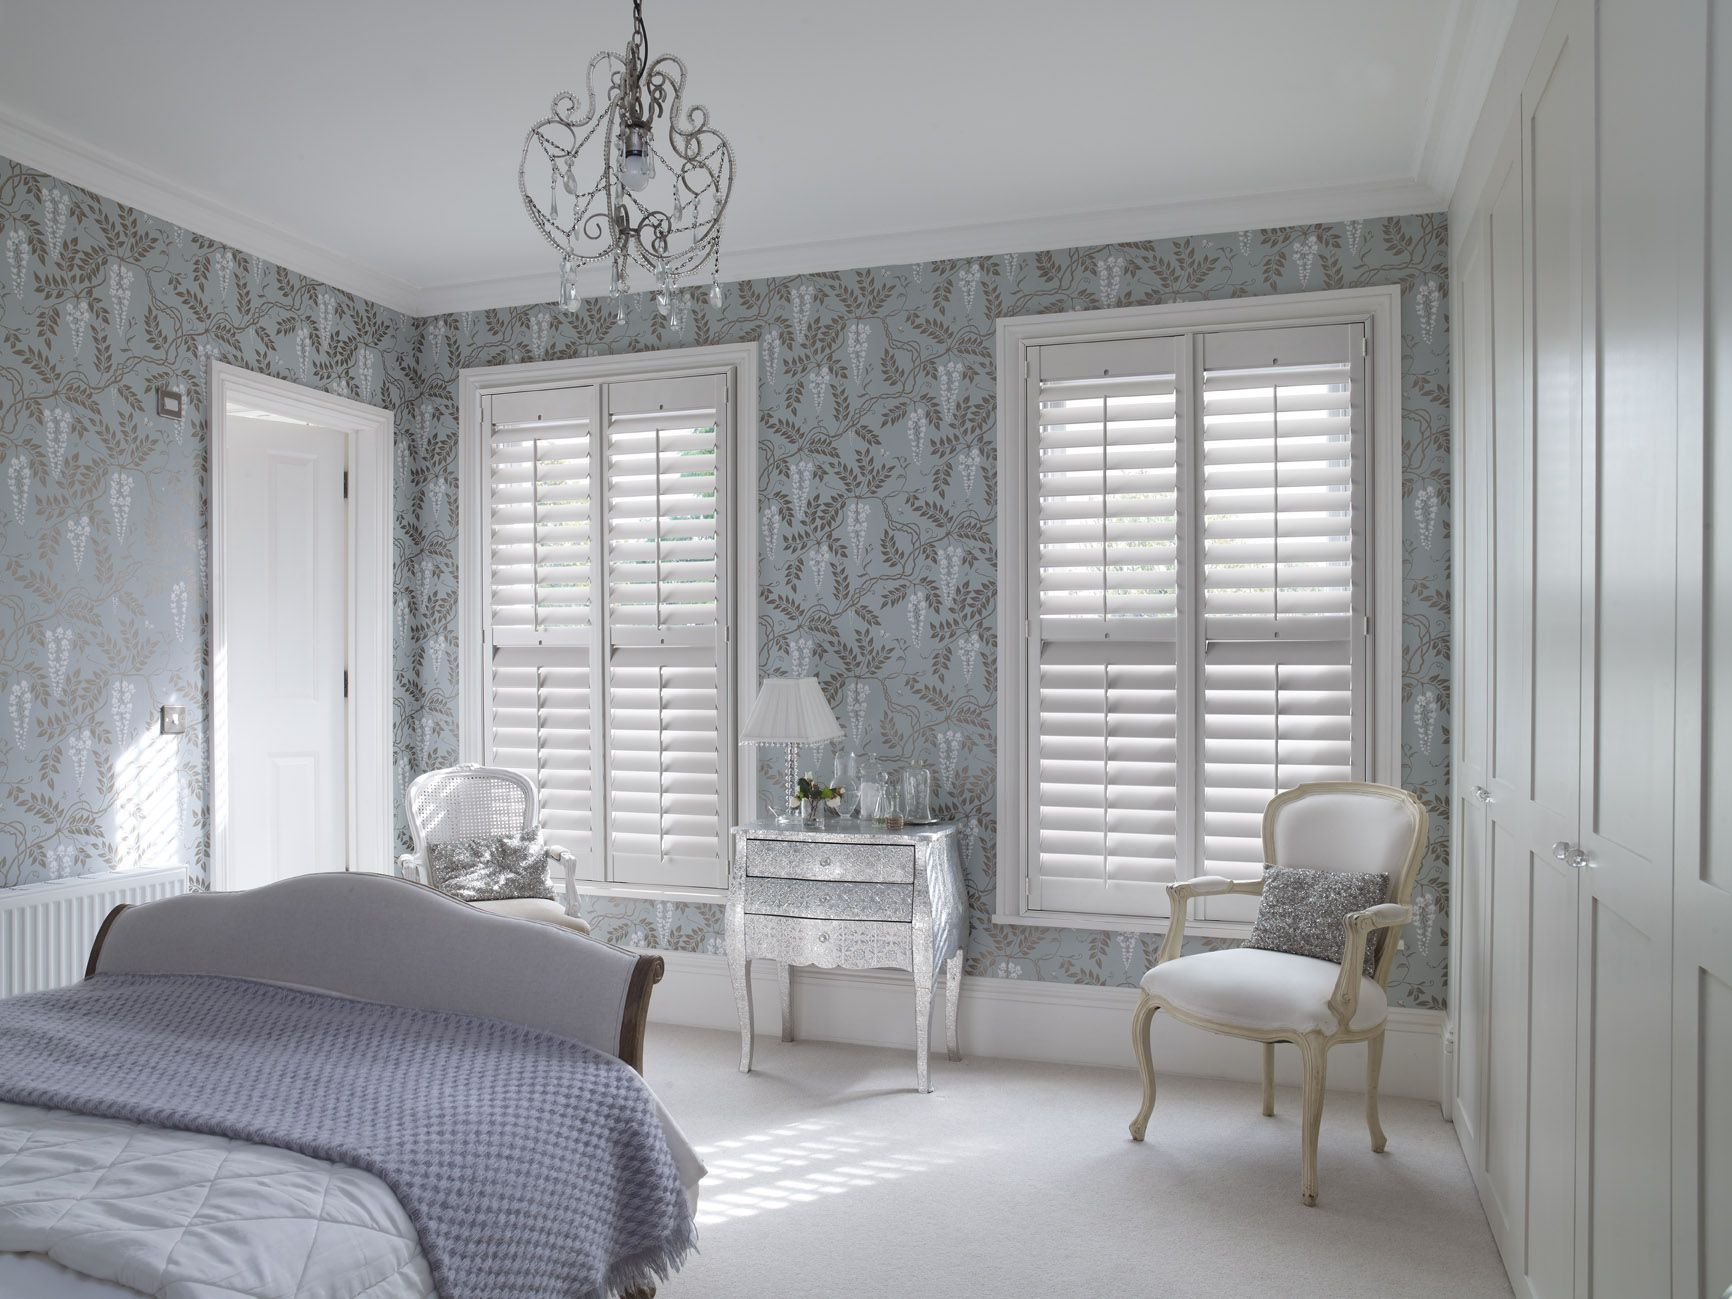 Bedroom shutters home deco pinterest bedrooms curtain styles